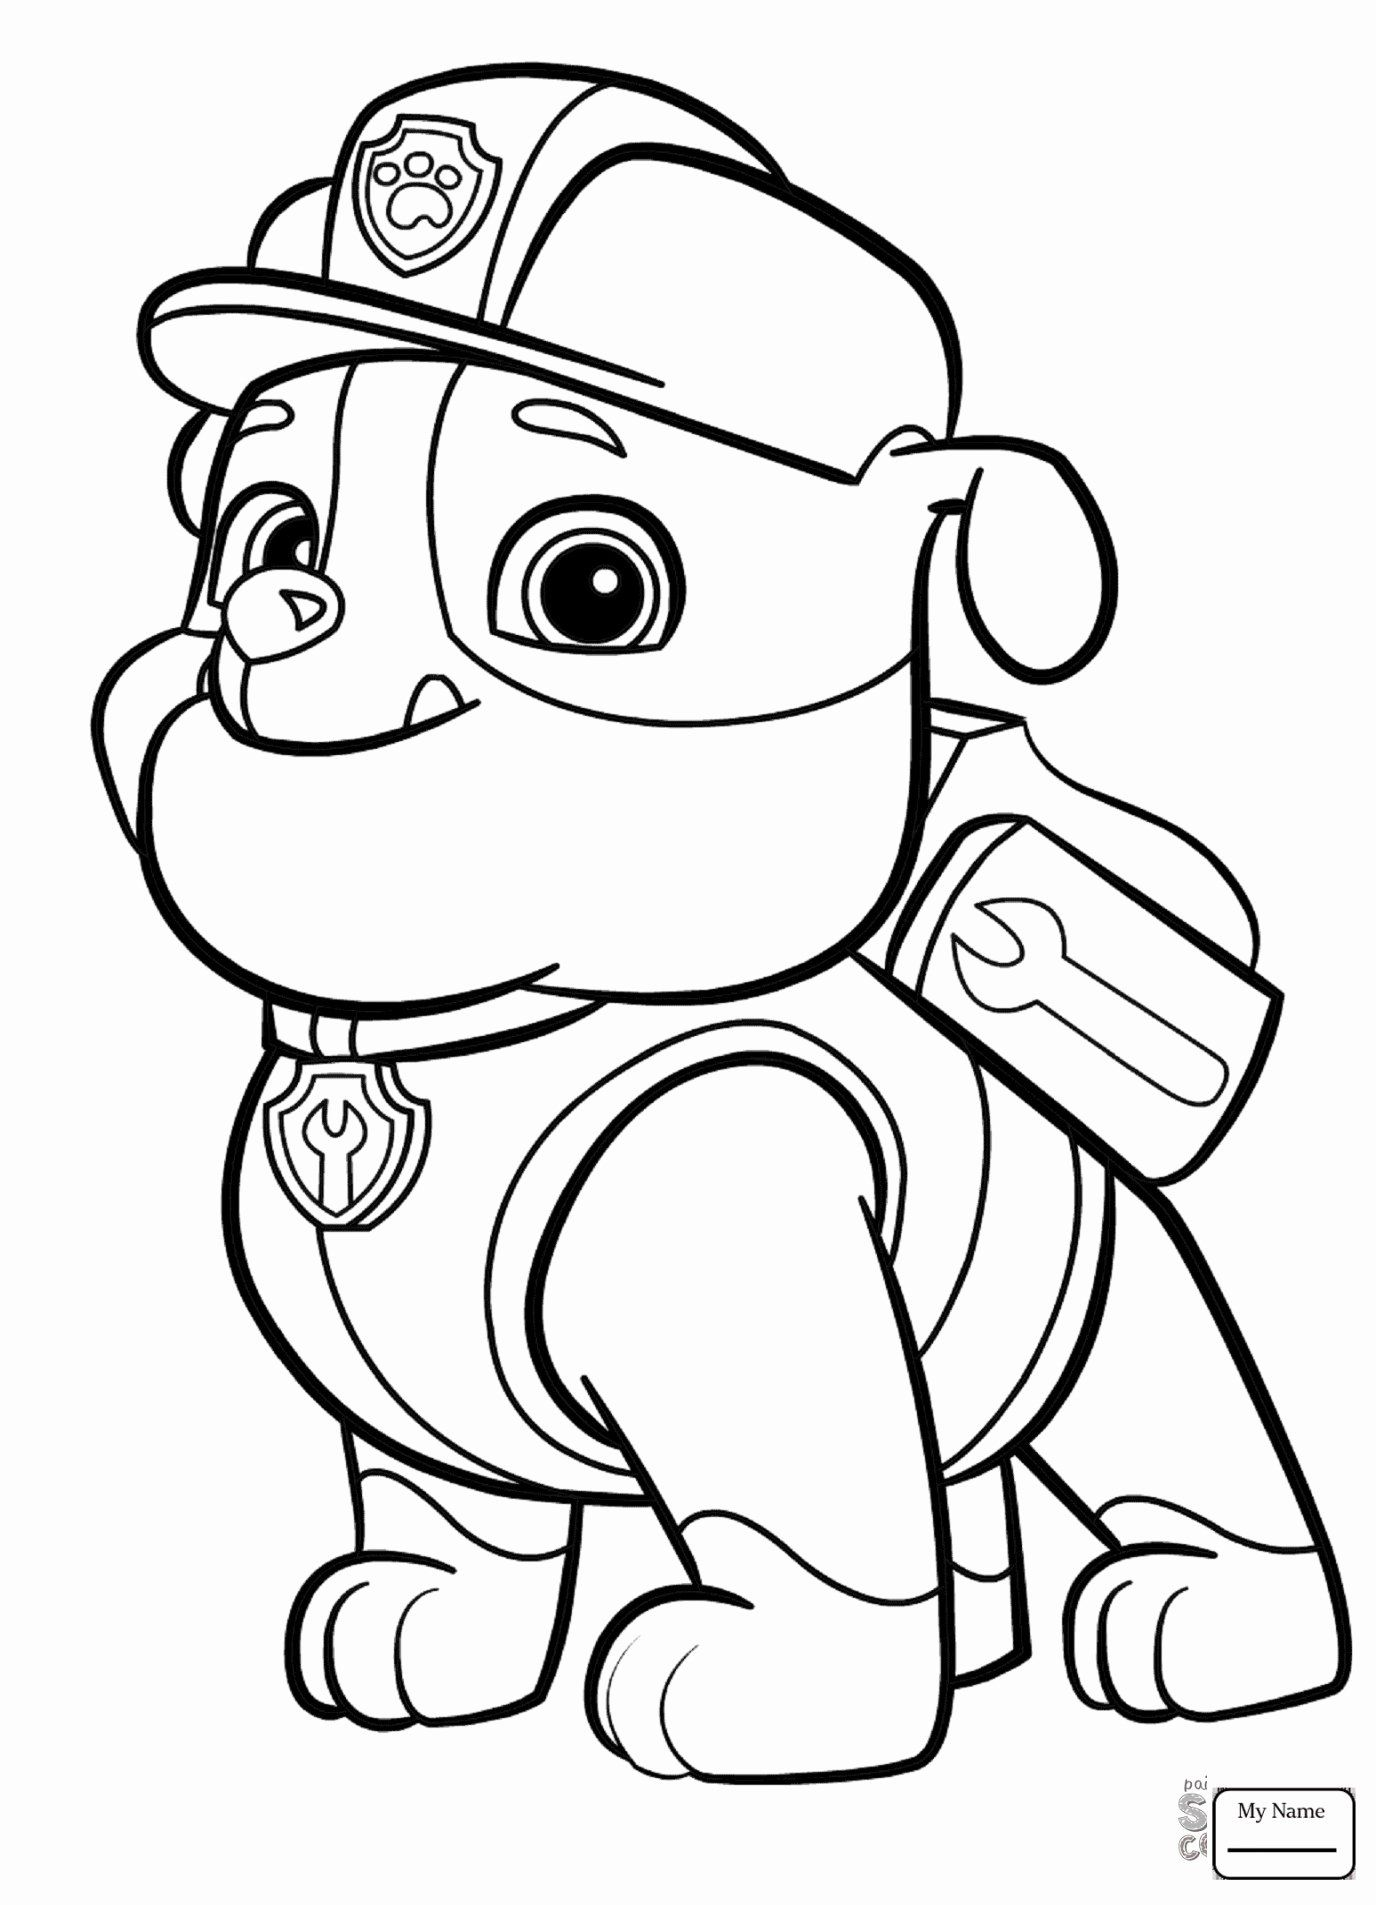 Coloring Book Cartoon Characters Lovely Paw Patrol Color Pages Coloring Books Rocky Paw Patrol Paw Patrol Coloring Paw Patrol Coloring Pages Paw Patrol Cartoon